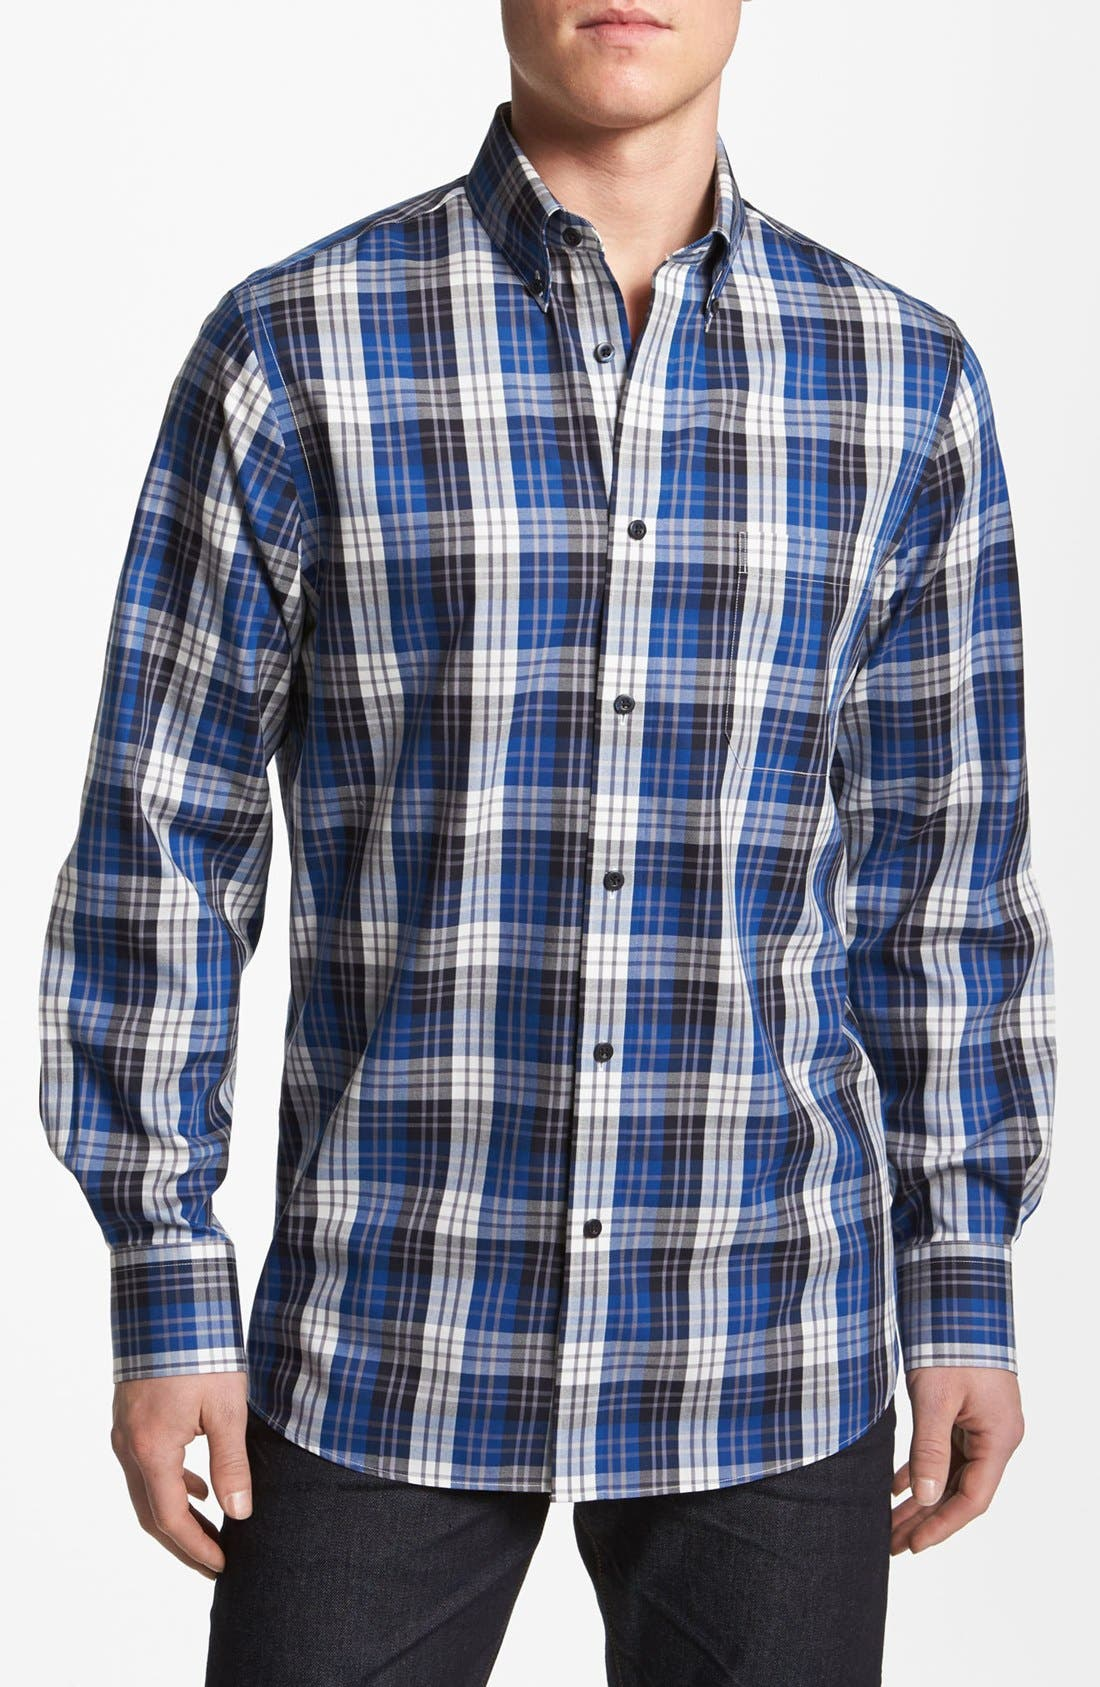 Alternate Image 1 Selected - Nordstrom Smartcare™ Plaid Oxford Sport Shirt